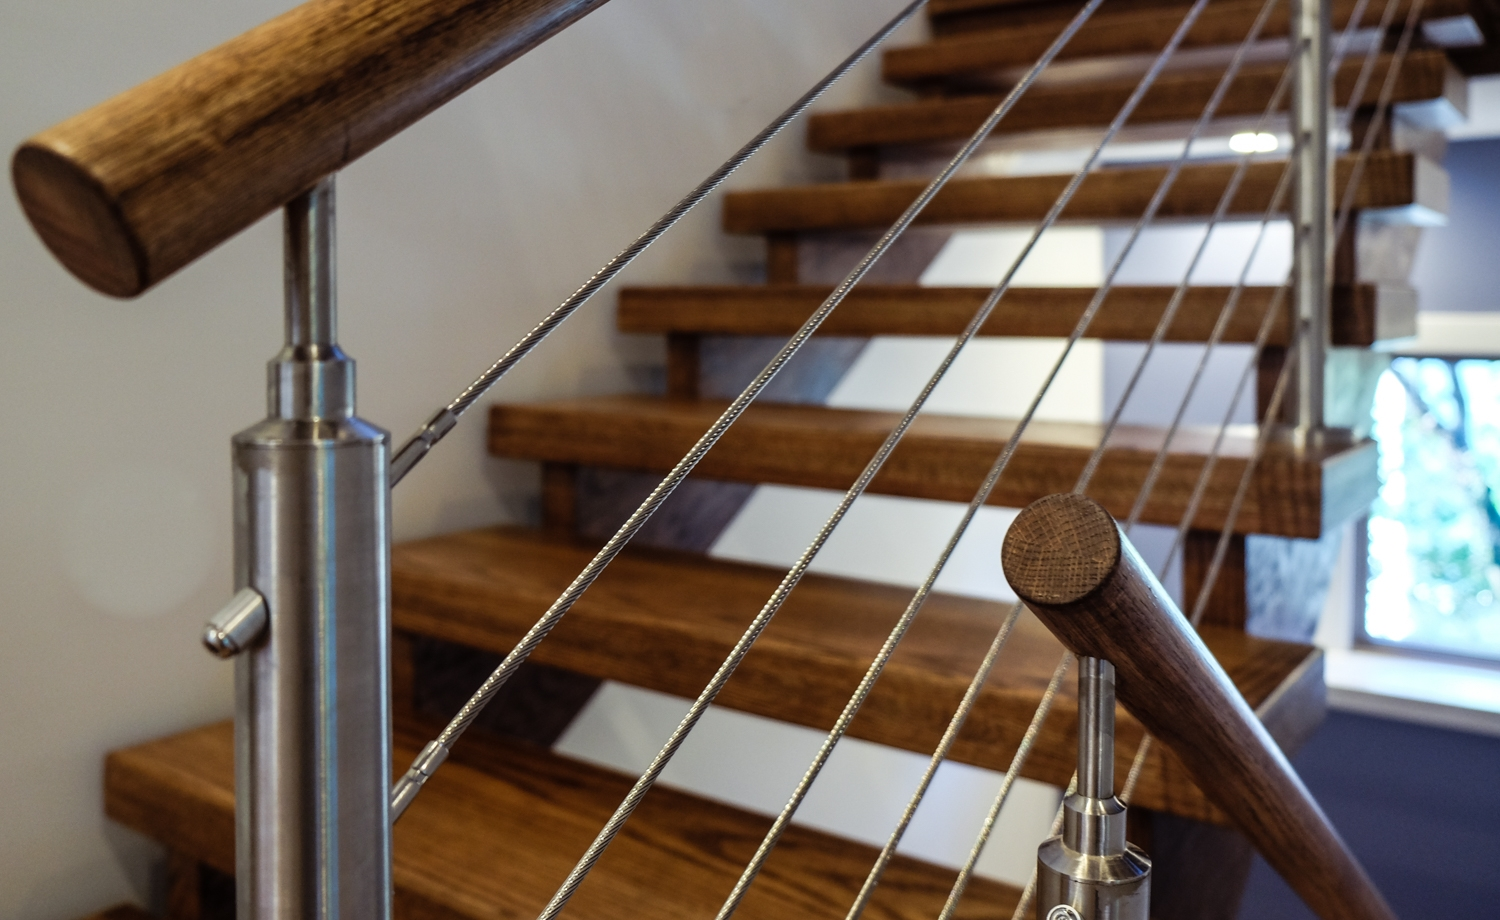 3 Popular Types Of Stair Railing Designs Southern Staircase | Wooden Hand Railing Designs | Light Wood | Residential Industrial Stair | Wood Panel | Decorative Glass | Scandinavian